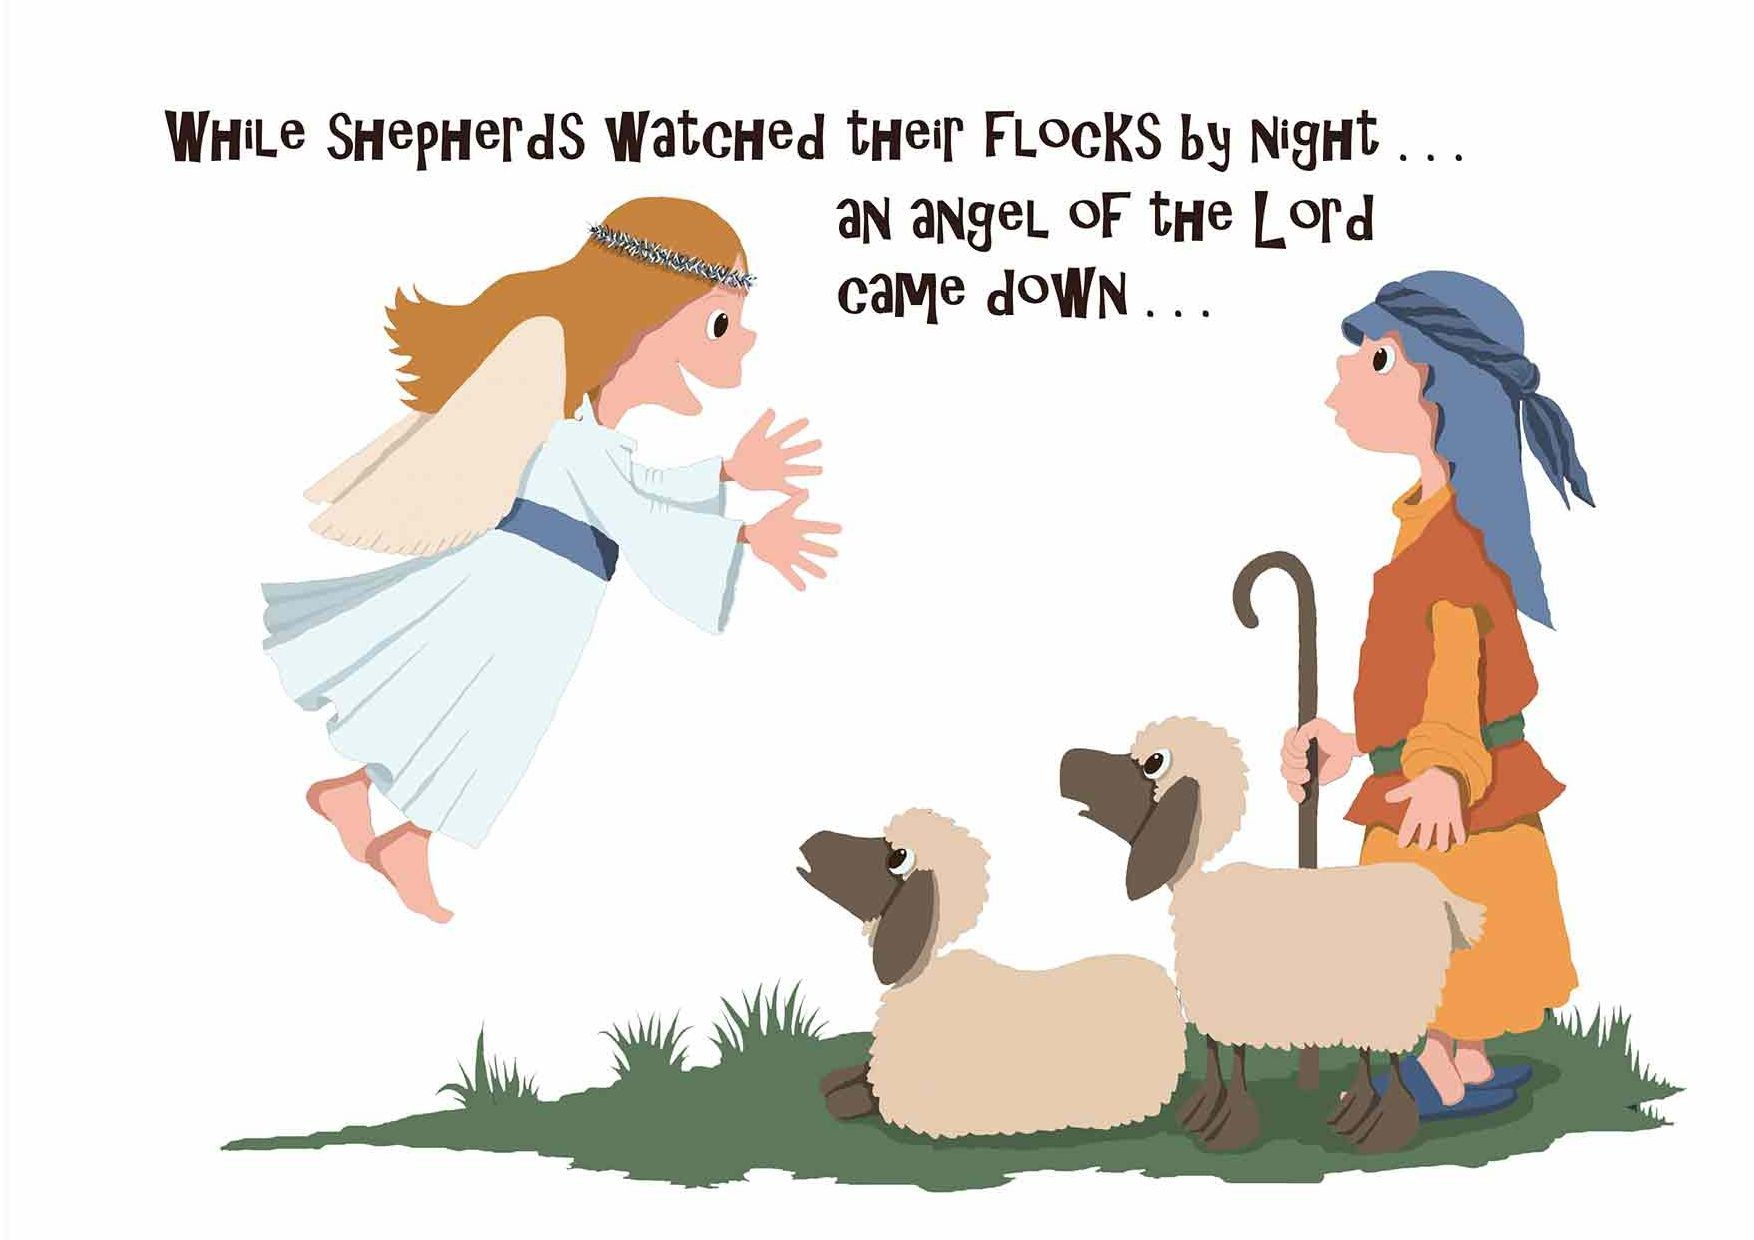 Shepherd clipart christmas. Card while shepherds watched